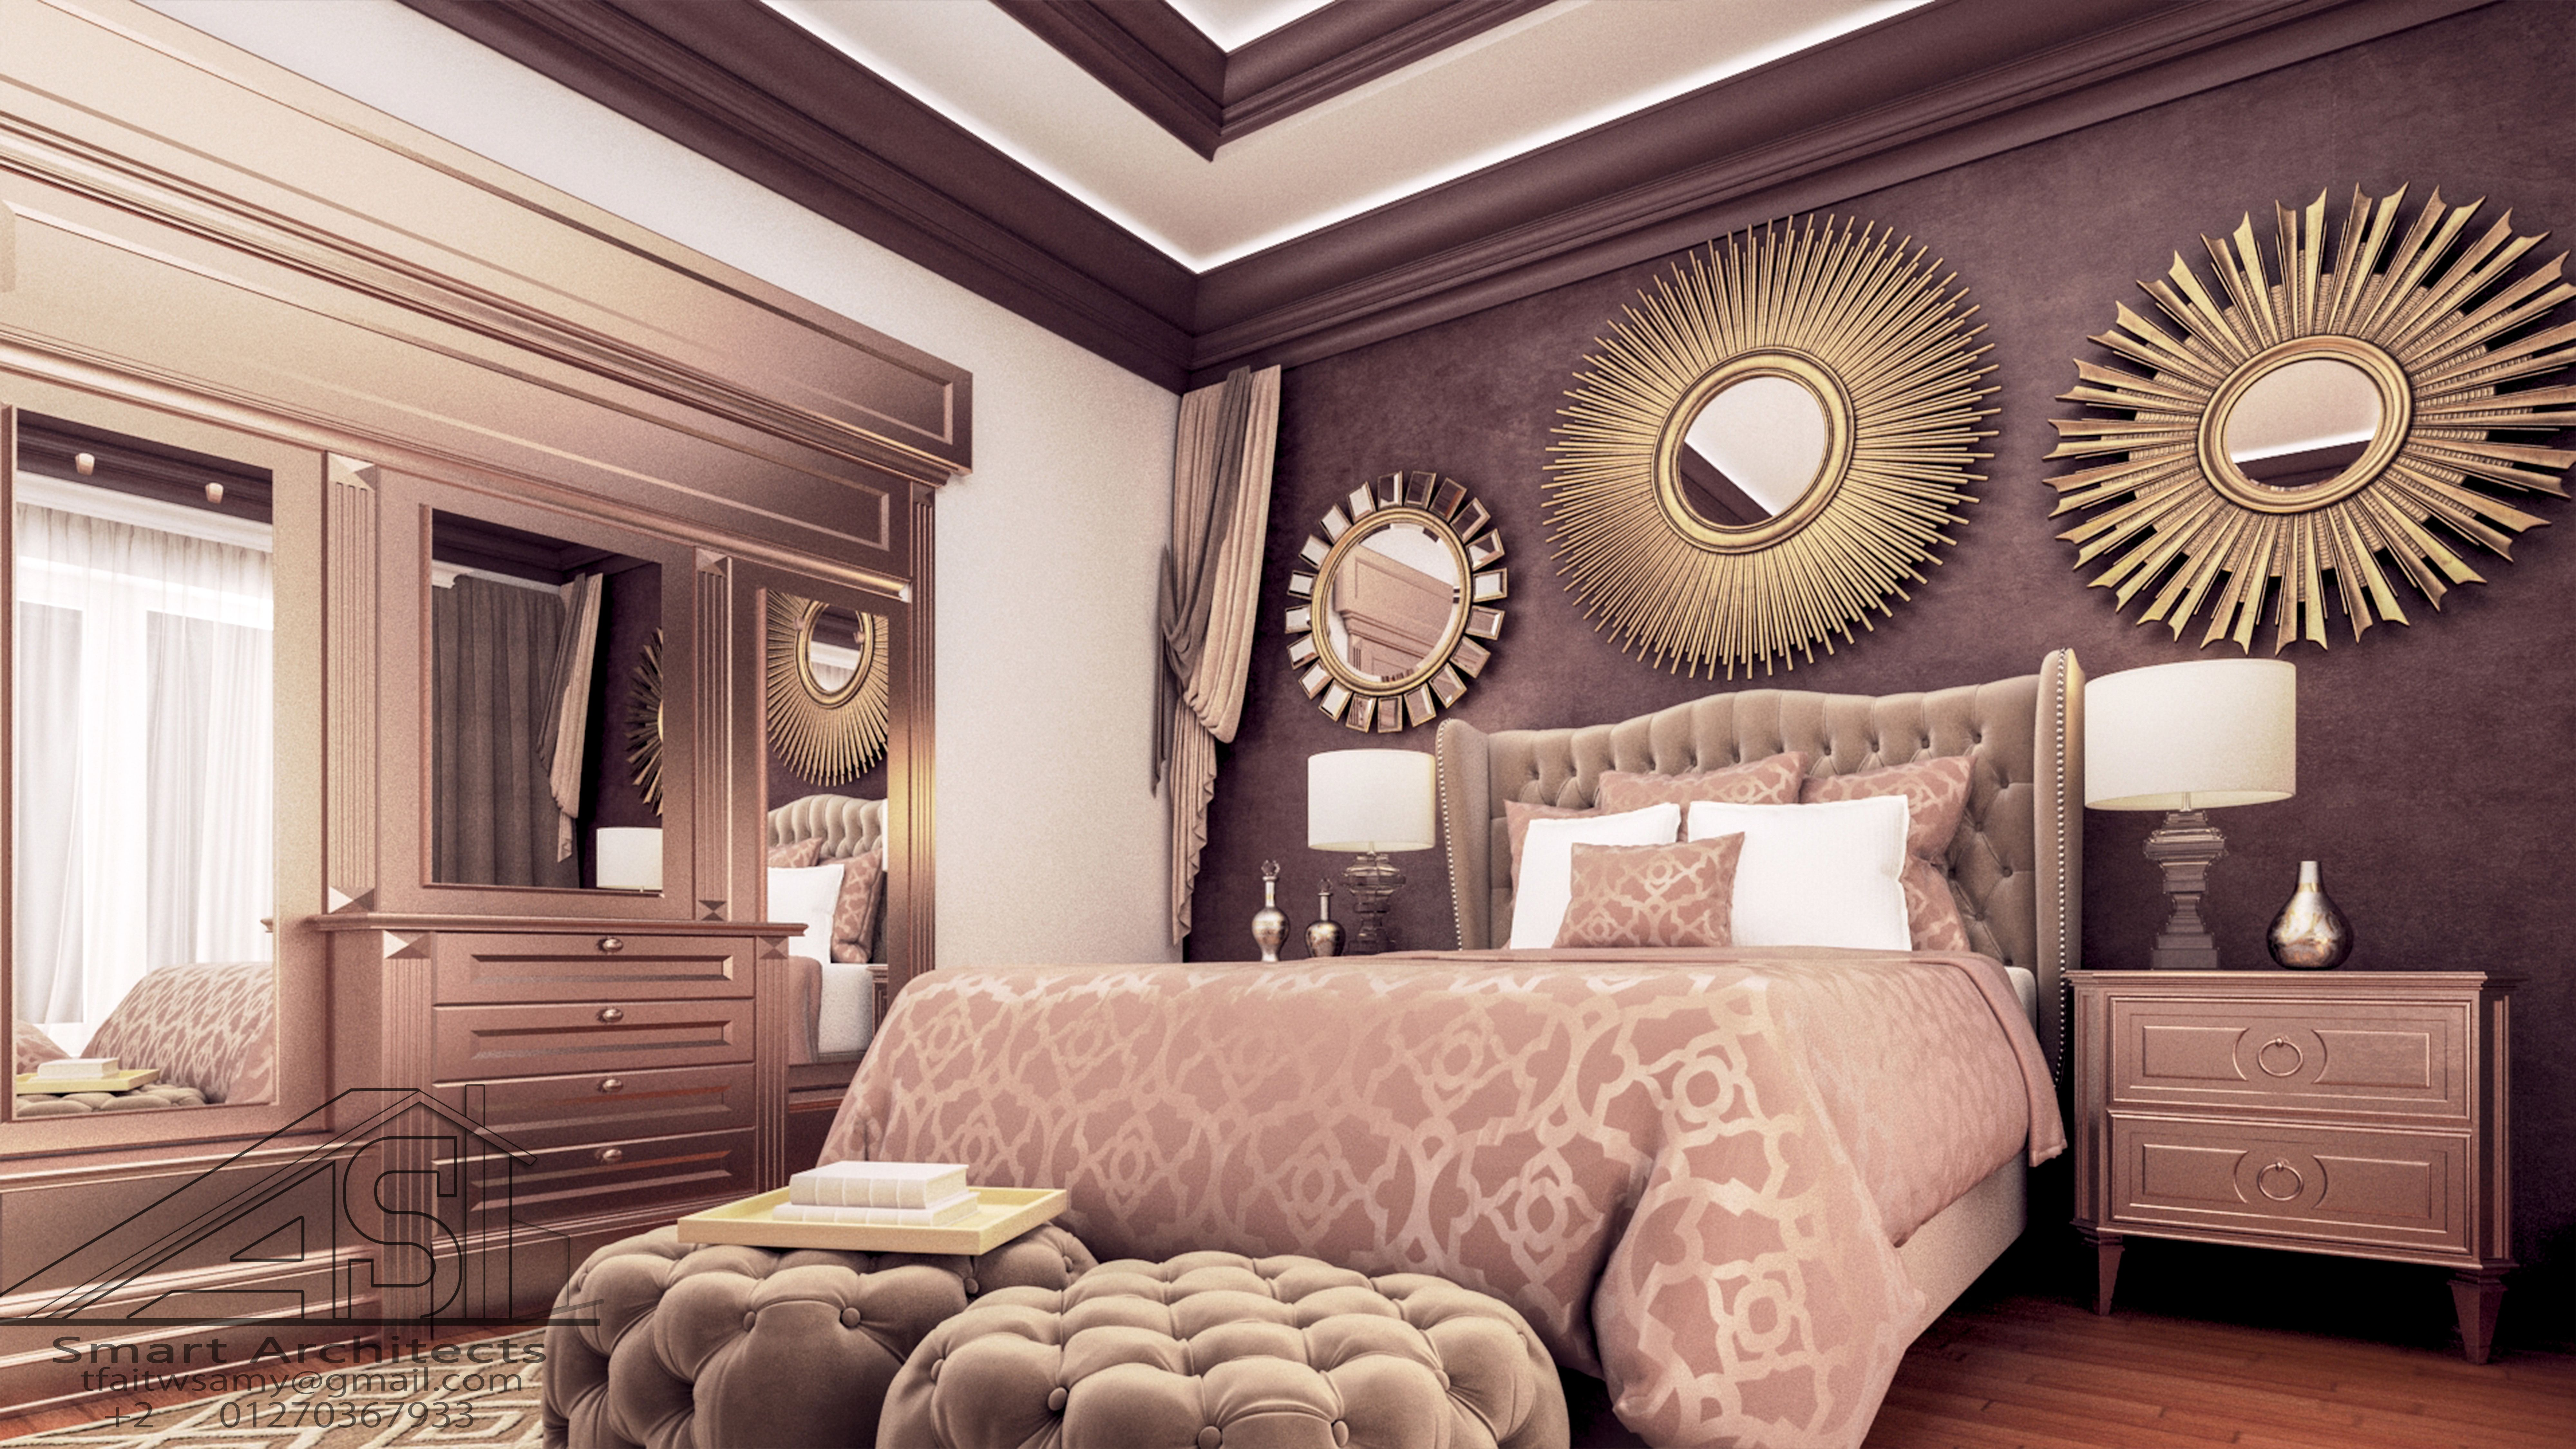 Classic bed room interior design 3d max photoshop